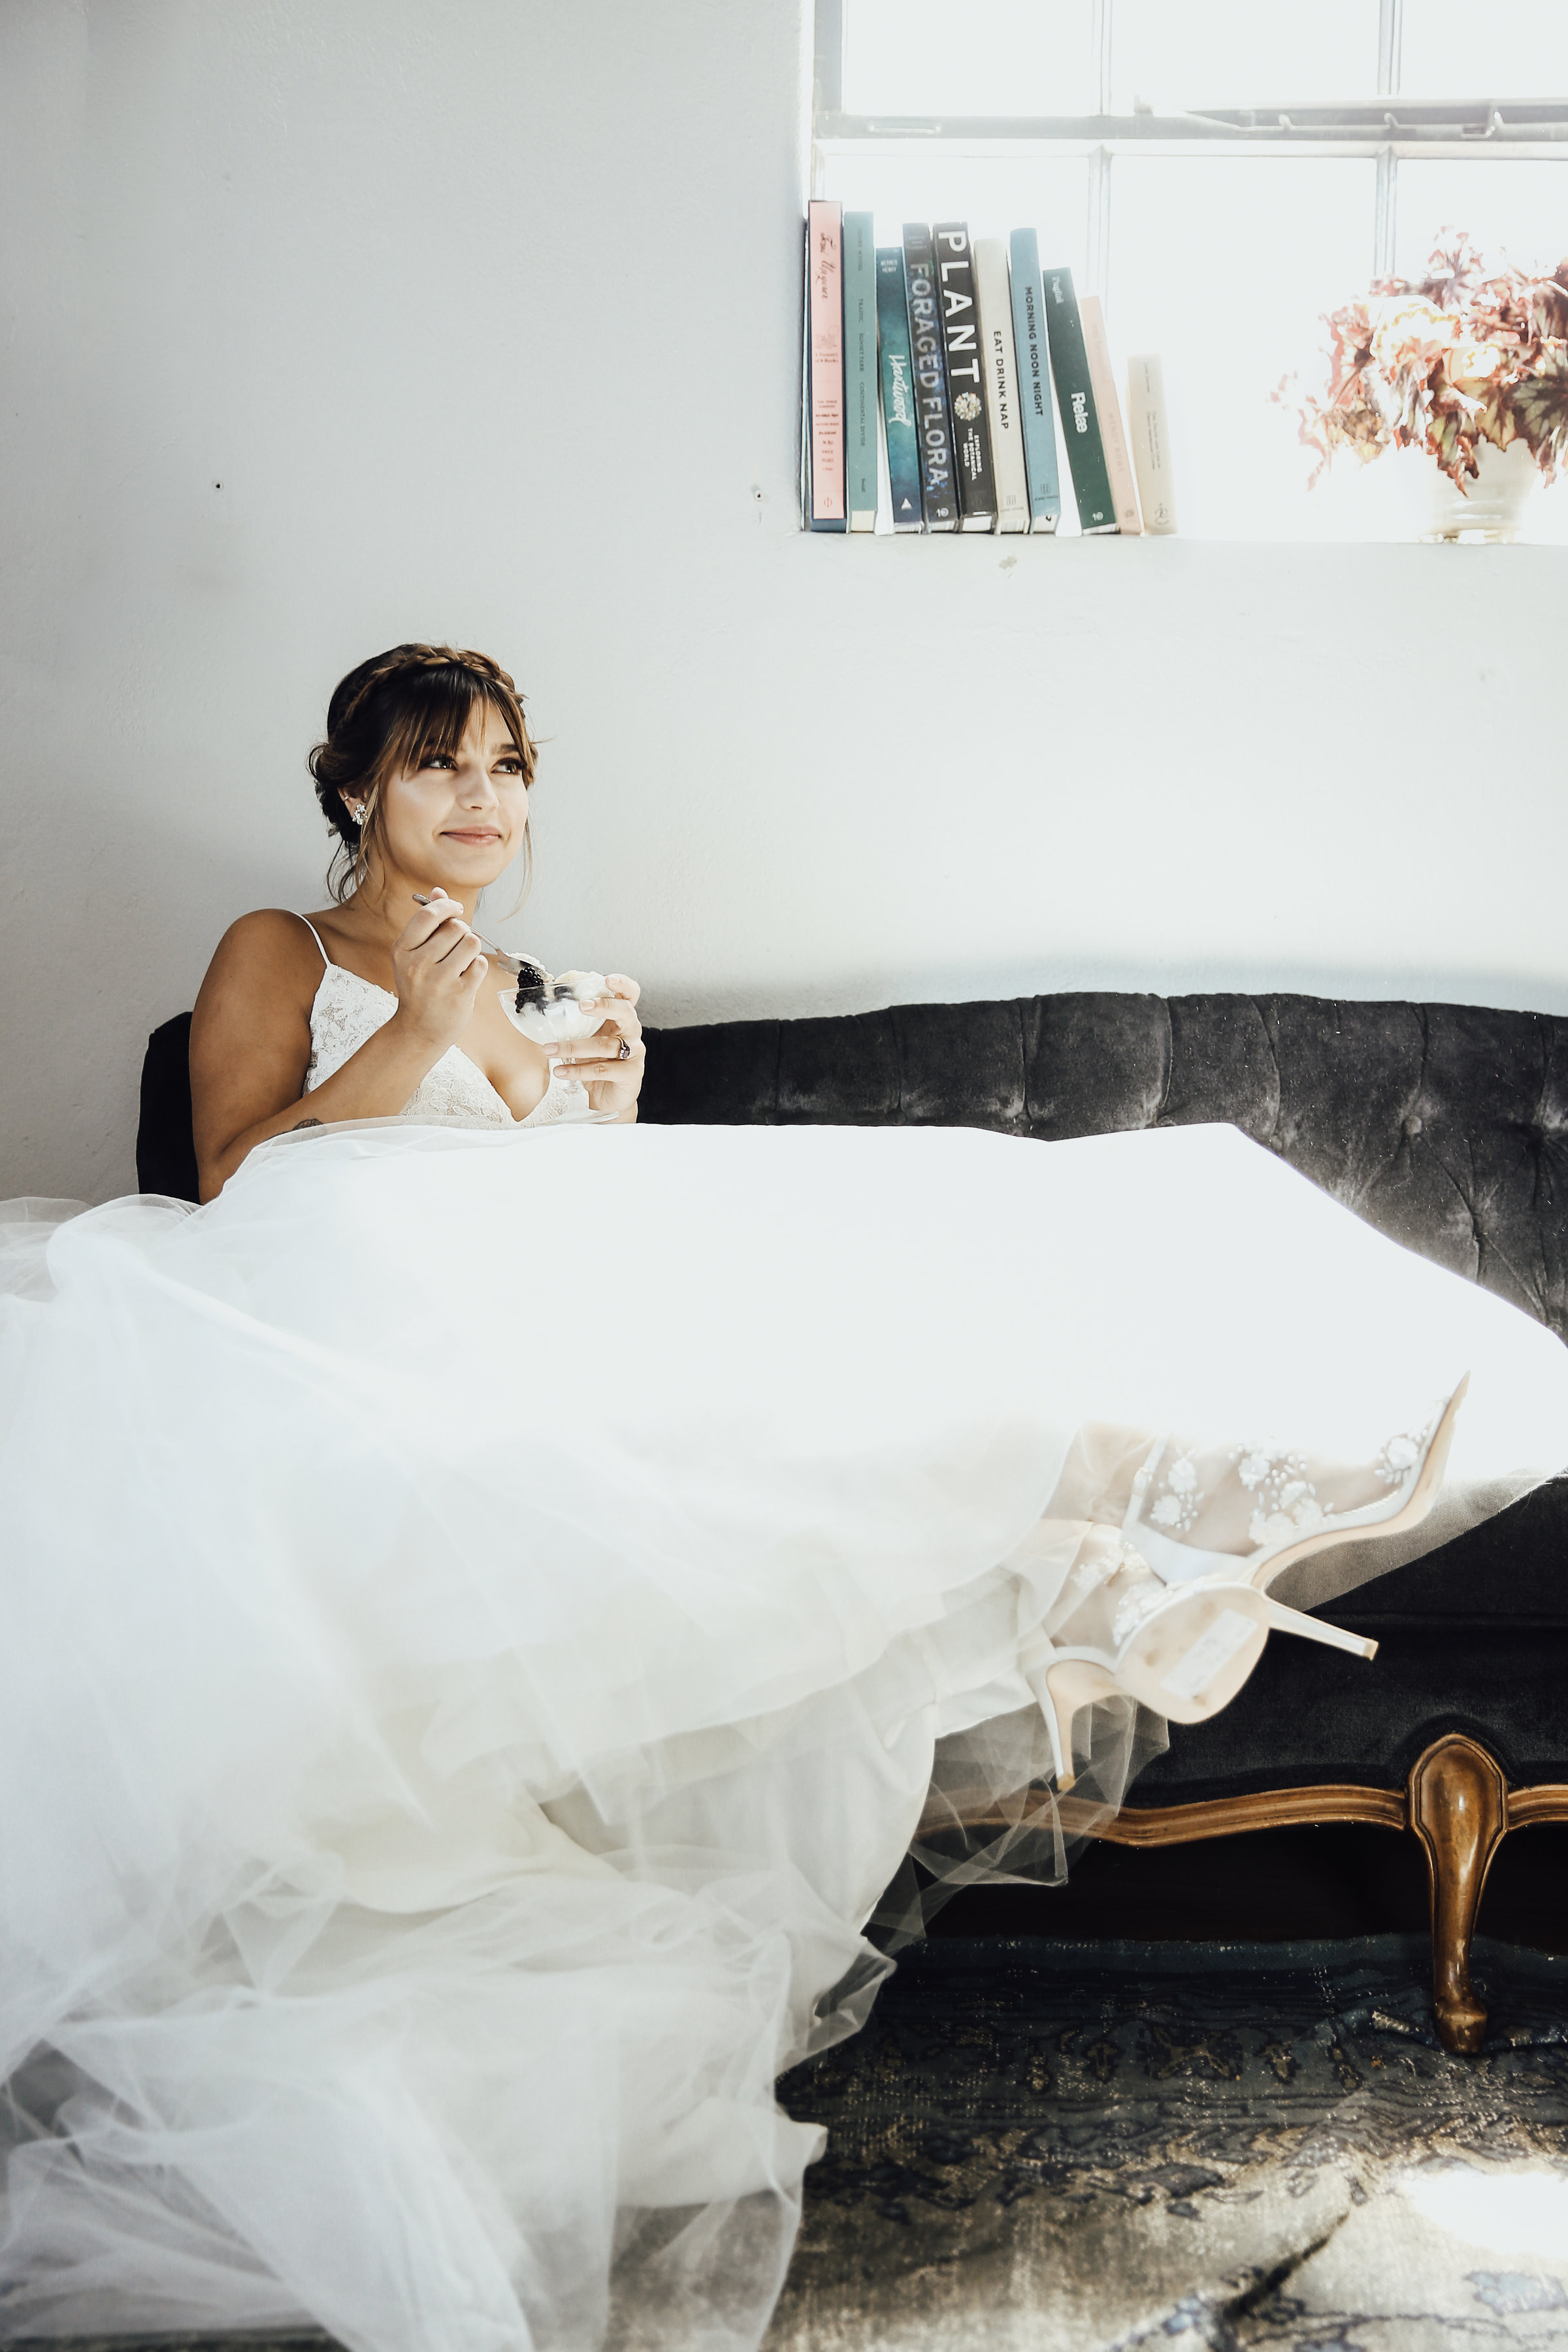 Photo by Rachel Photographs | Dress + Shoes by Chantilly Couture Bridal | Flowers by The Wild Mother | Venue: Holloway House | Model: Emily Morton | Hair + Makeup by Blo Beauty Bar